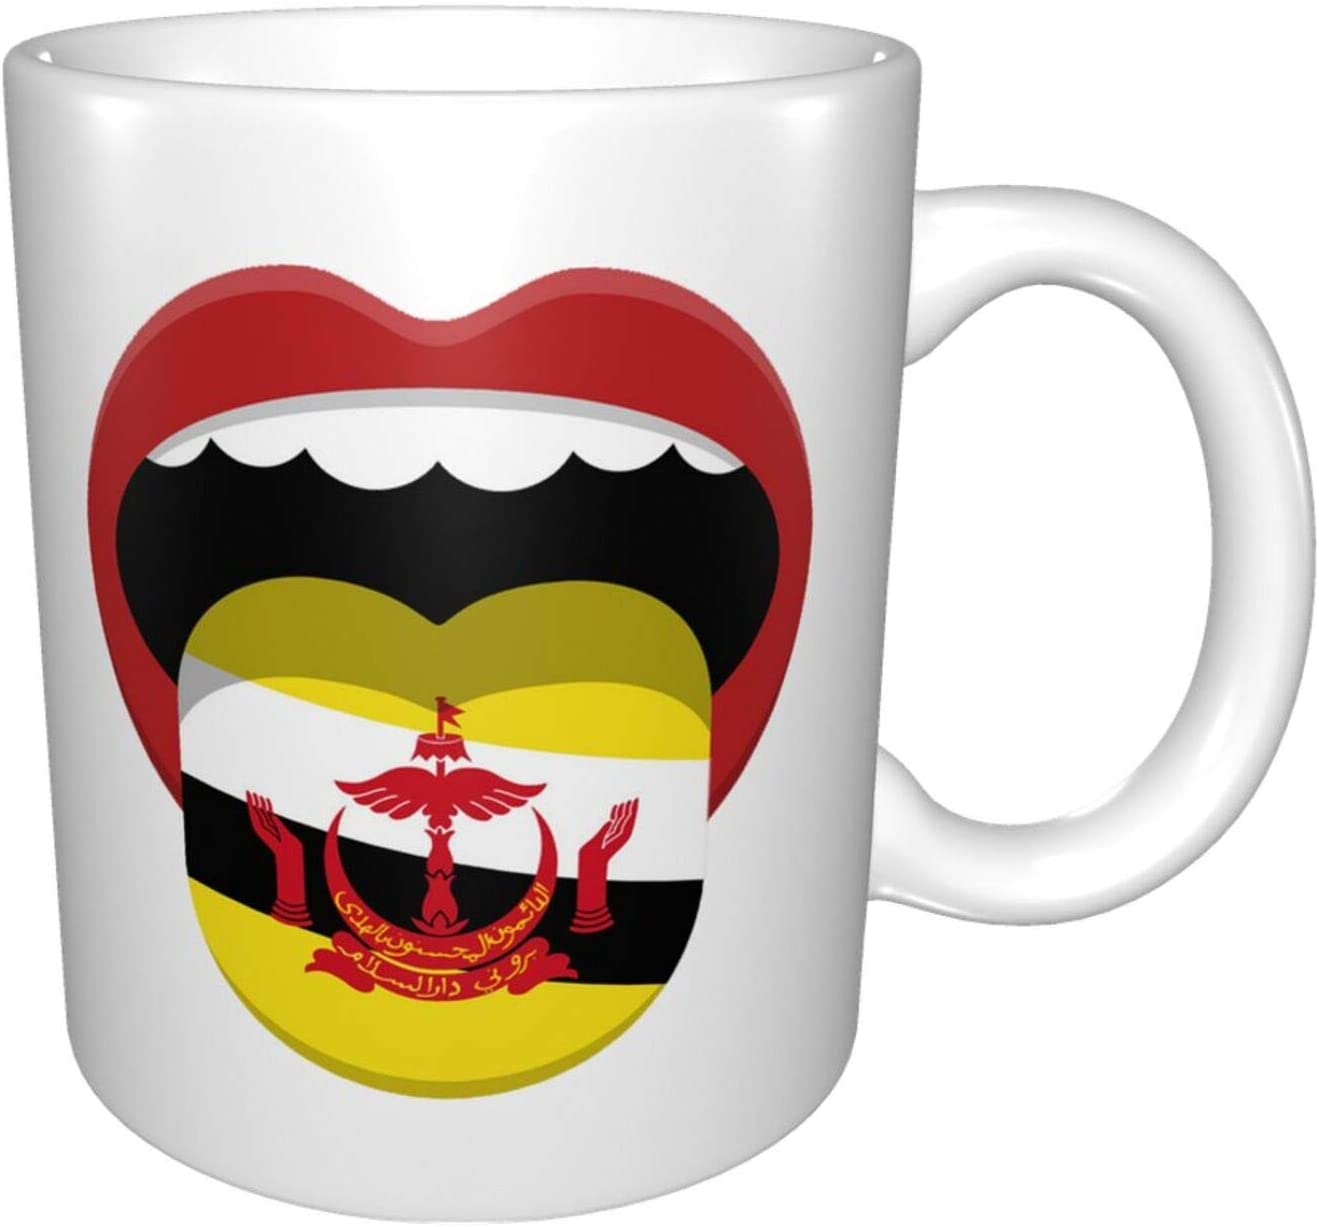 The Country Over item Raleigh Mall handling ☆ In Our Mouth Brunei Drinking Cup Coffee Ceramic Mug